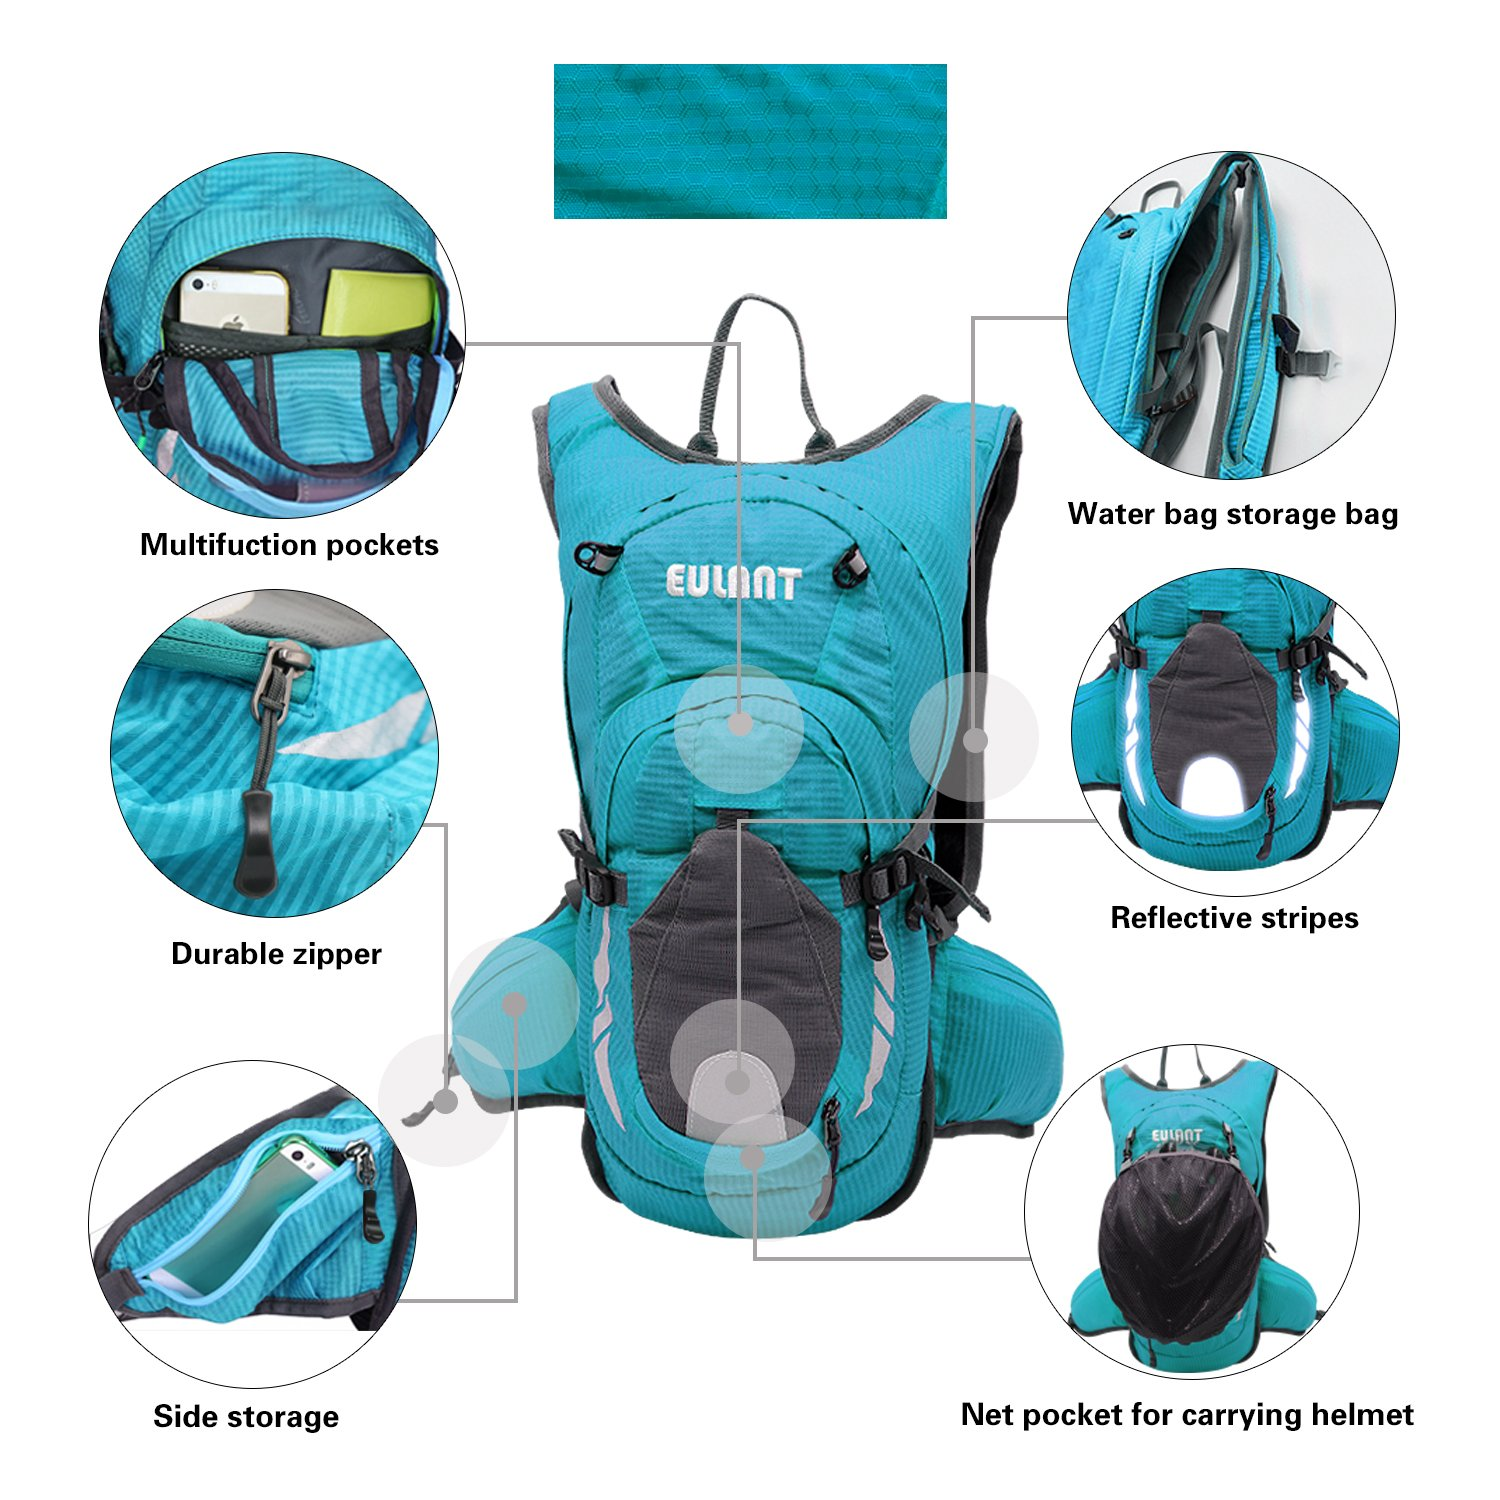 EULANT Hydration Backpack Multi-Function Riding Backpack for Hiking Running Cycling Camping and Mountain Outdoor Air Director Back Pane for Kids Women and Men Not Included Water Bladder